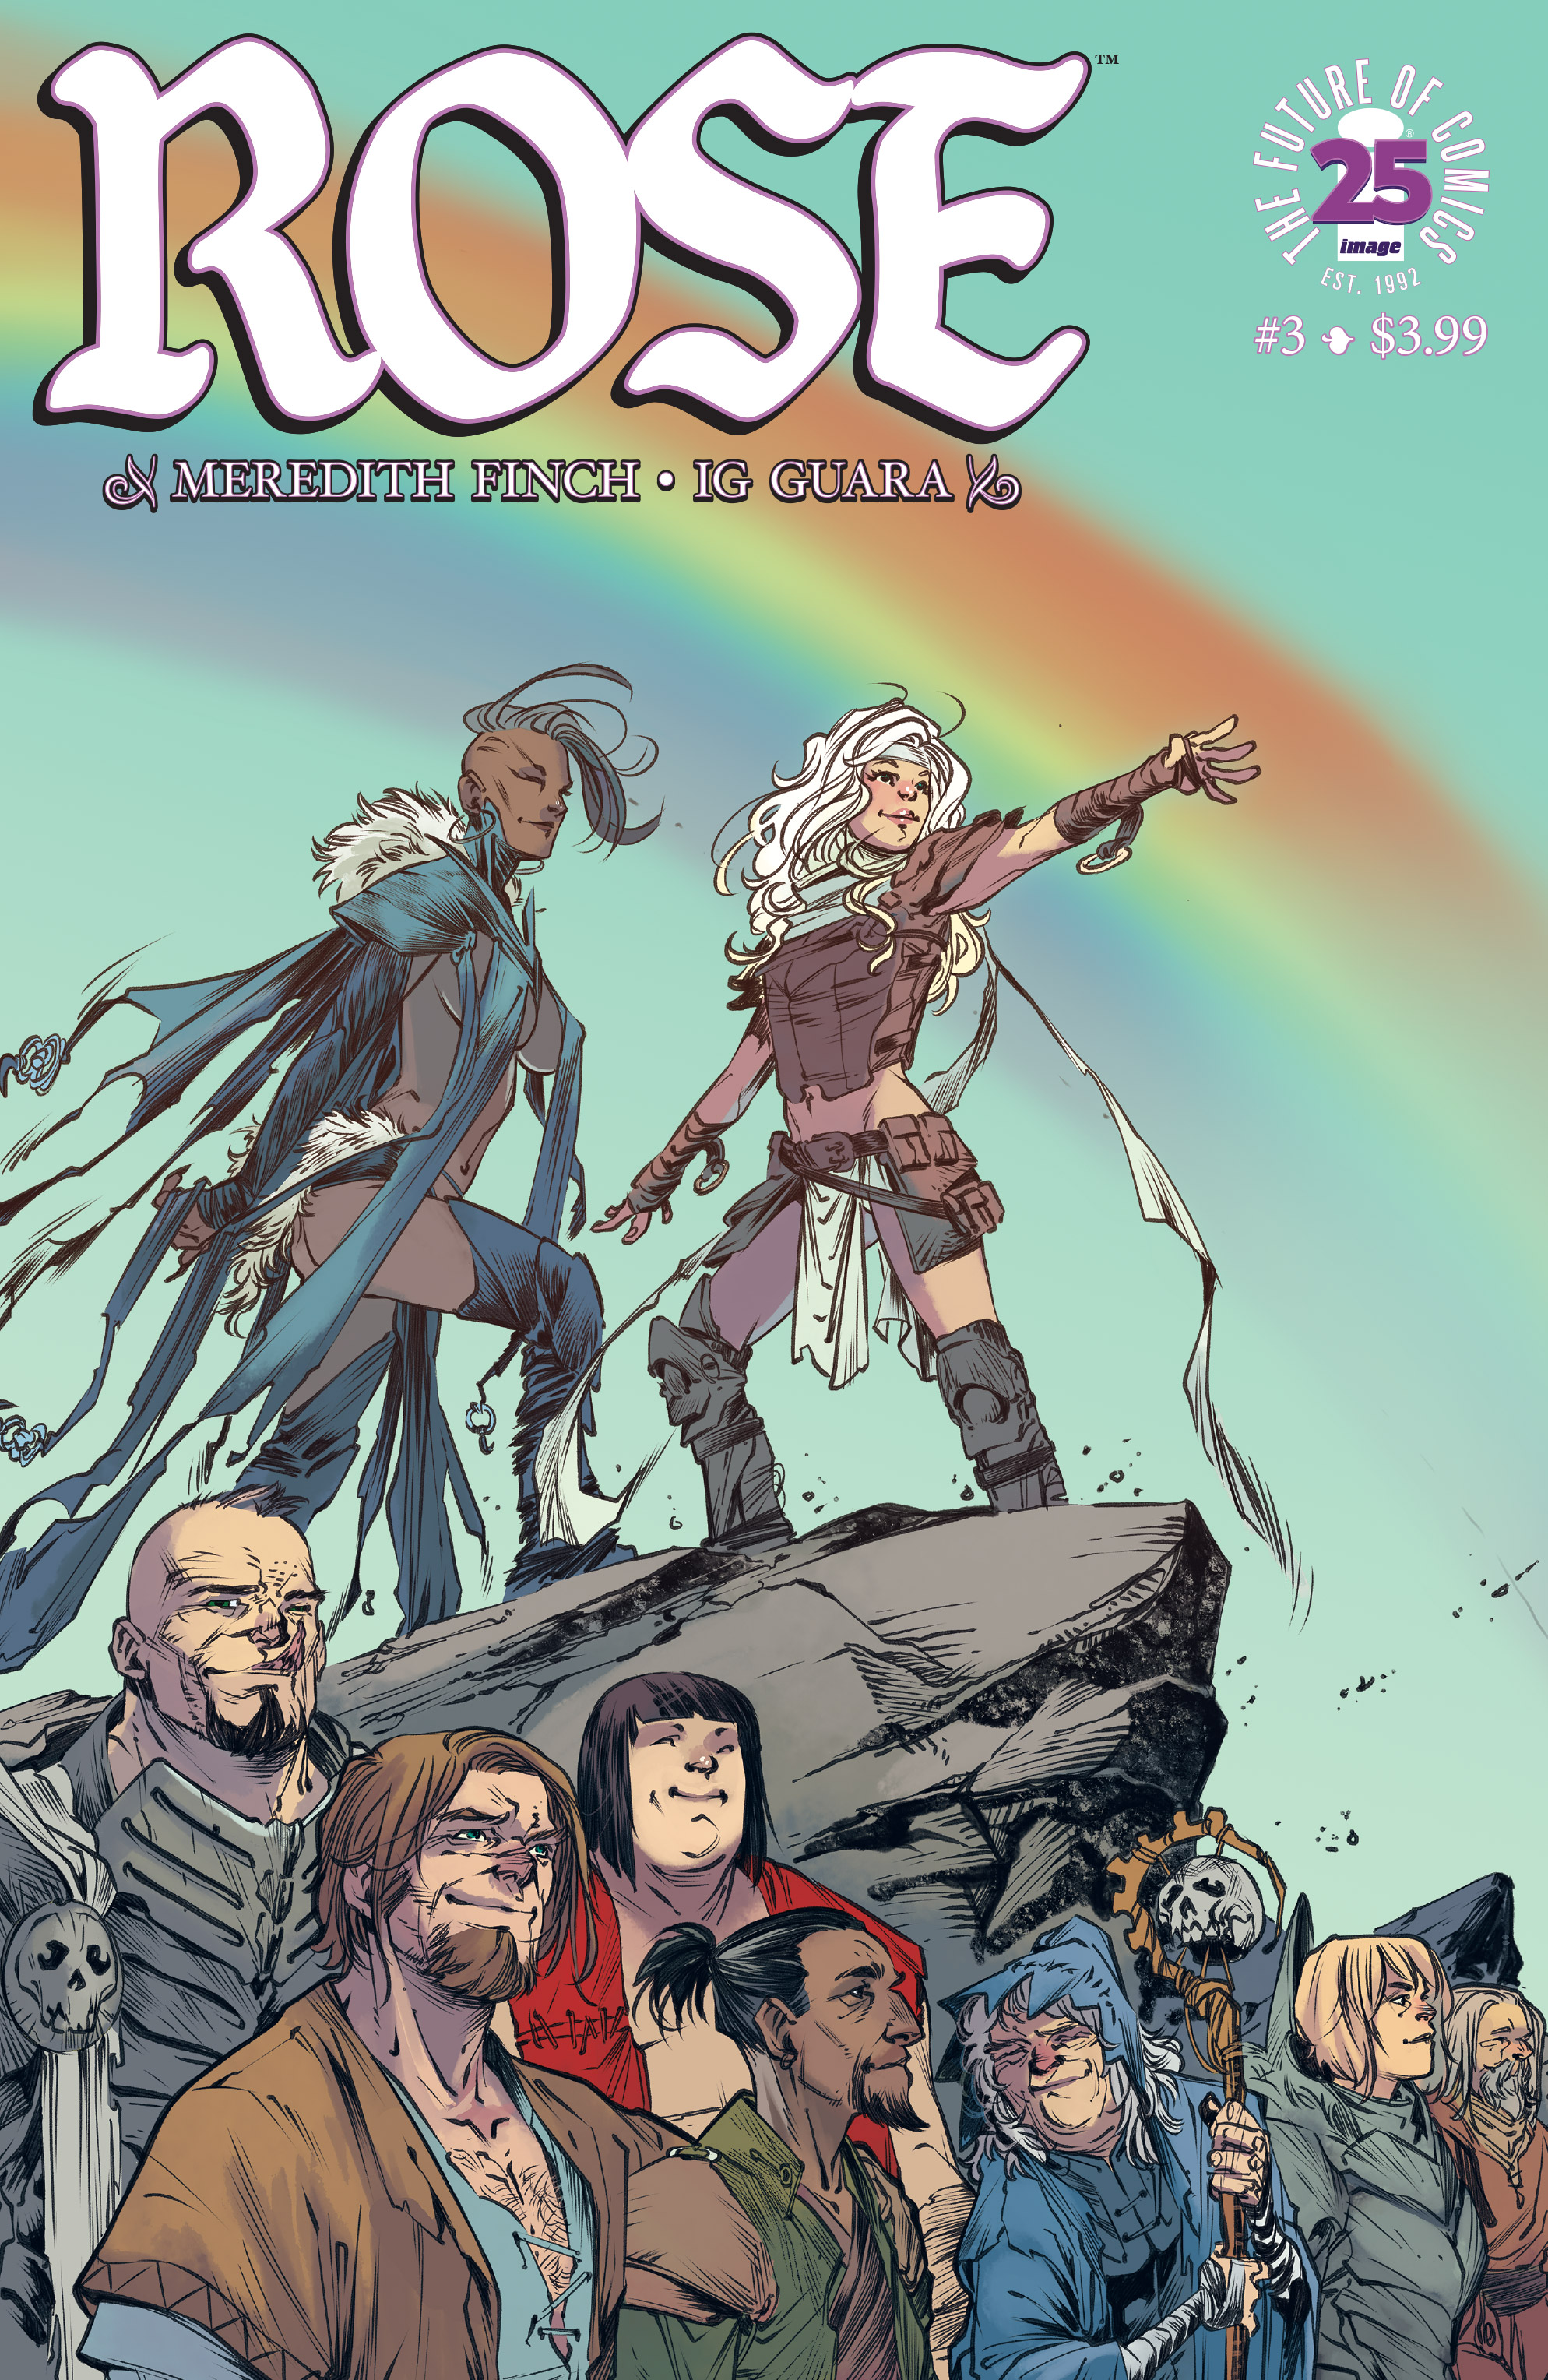 Read online Rose comic -  Issue #3 - 33